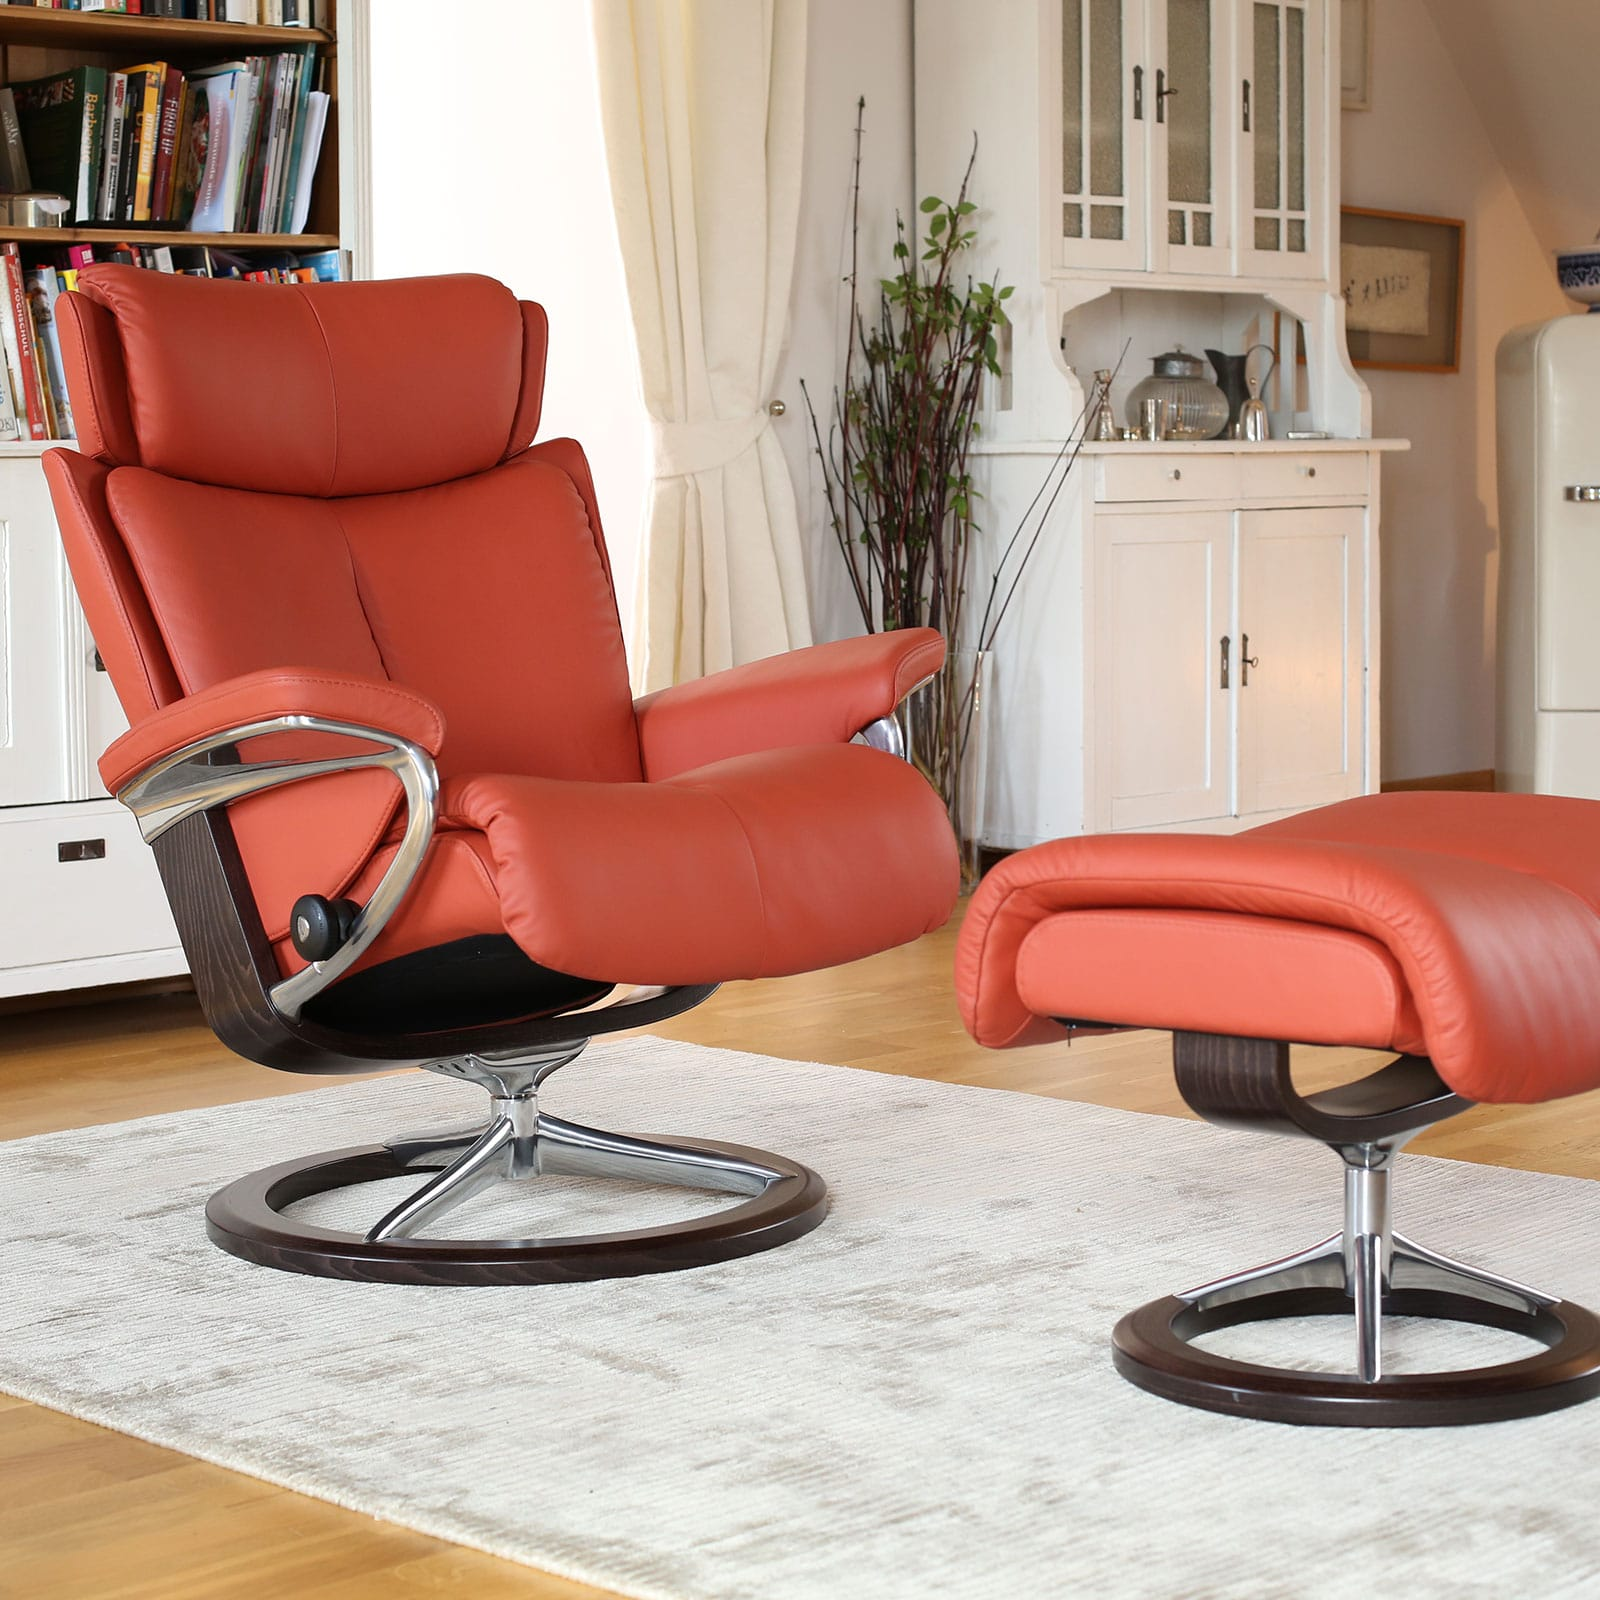 Relaxsessel Leder Braun Stressless Relax-sessel Magic Paloma Henna Signature Hocker